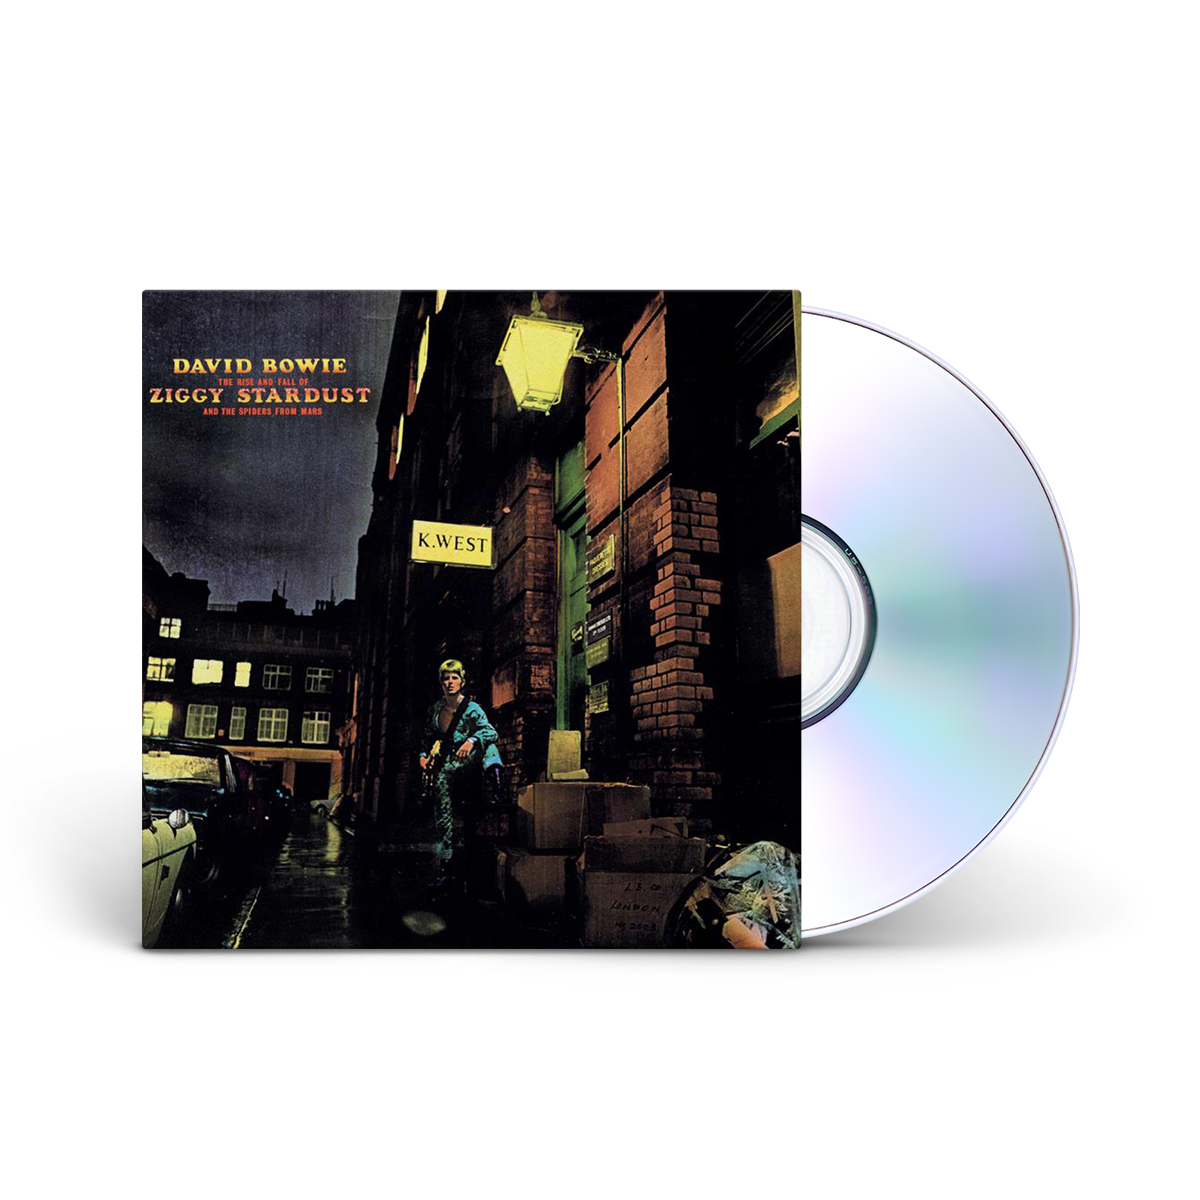 David Bowie The Rise And Fall Of Ziggy Stardust And The Spiders From Mars CD